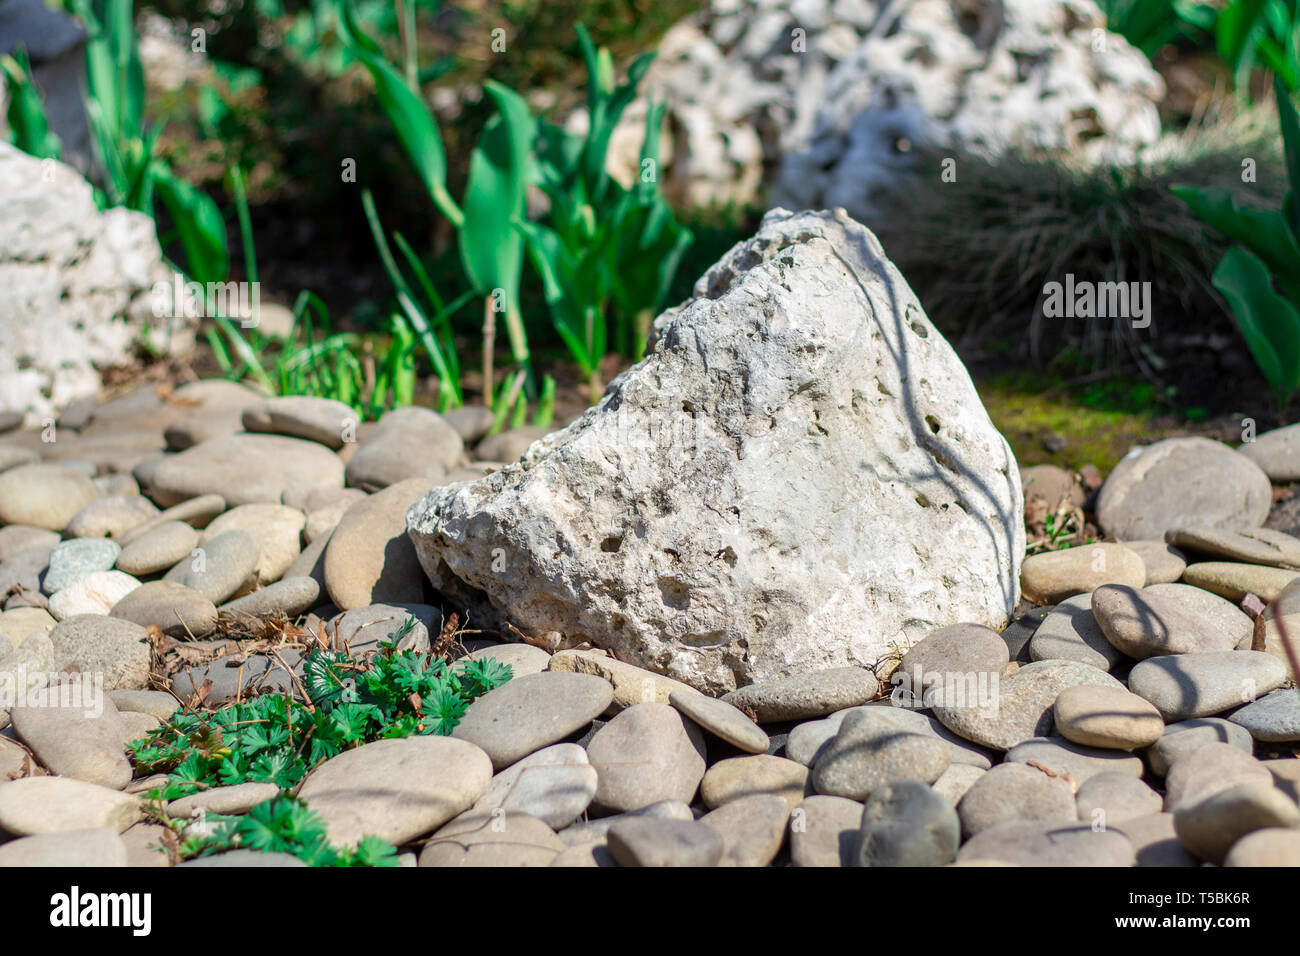 Landscaping On A Bed Flower Decoration Of Stones And Cobblestones Japanese Gardens With Decorations From Large Stones Stock Photo Alamy